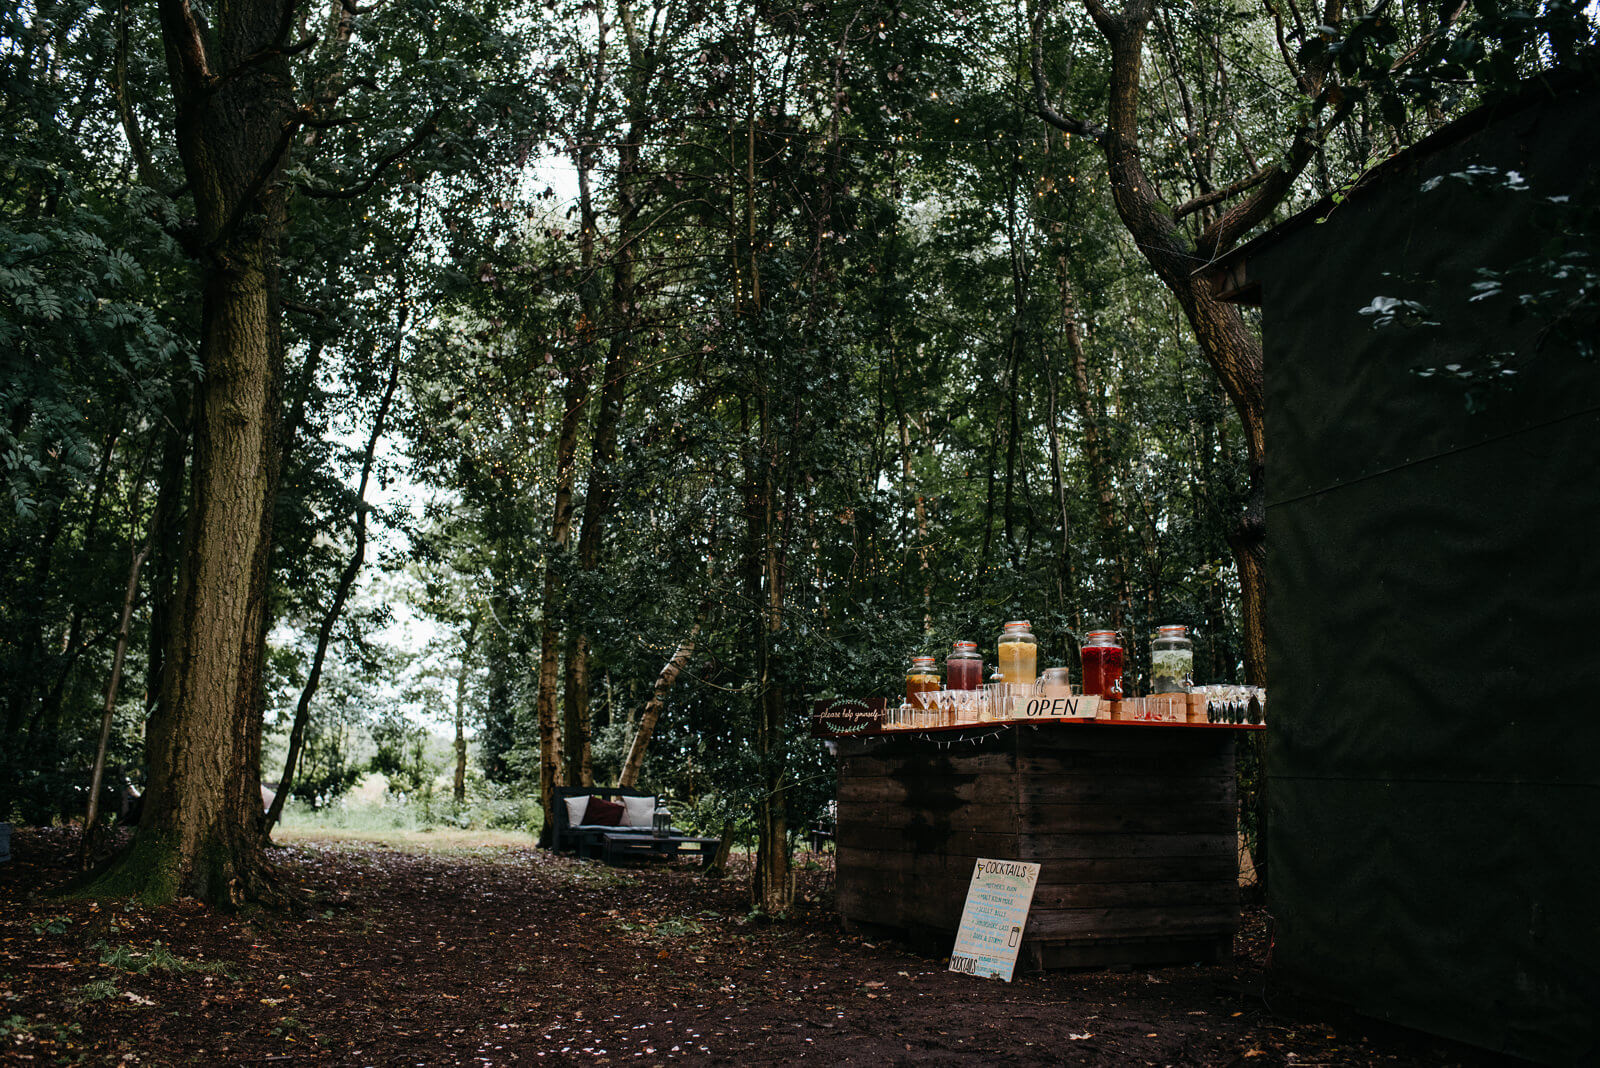 Woodland bar and fairy light observatory on the edge of Shropshire nature reserve at tipi festival